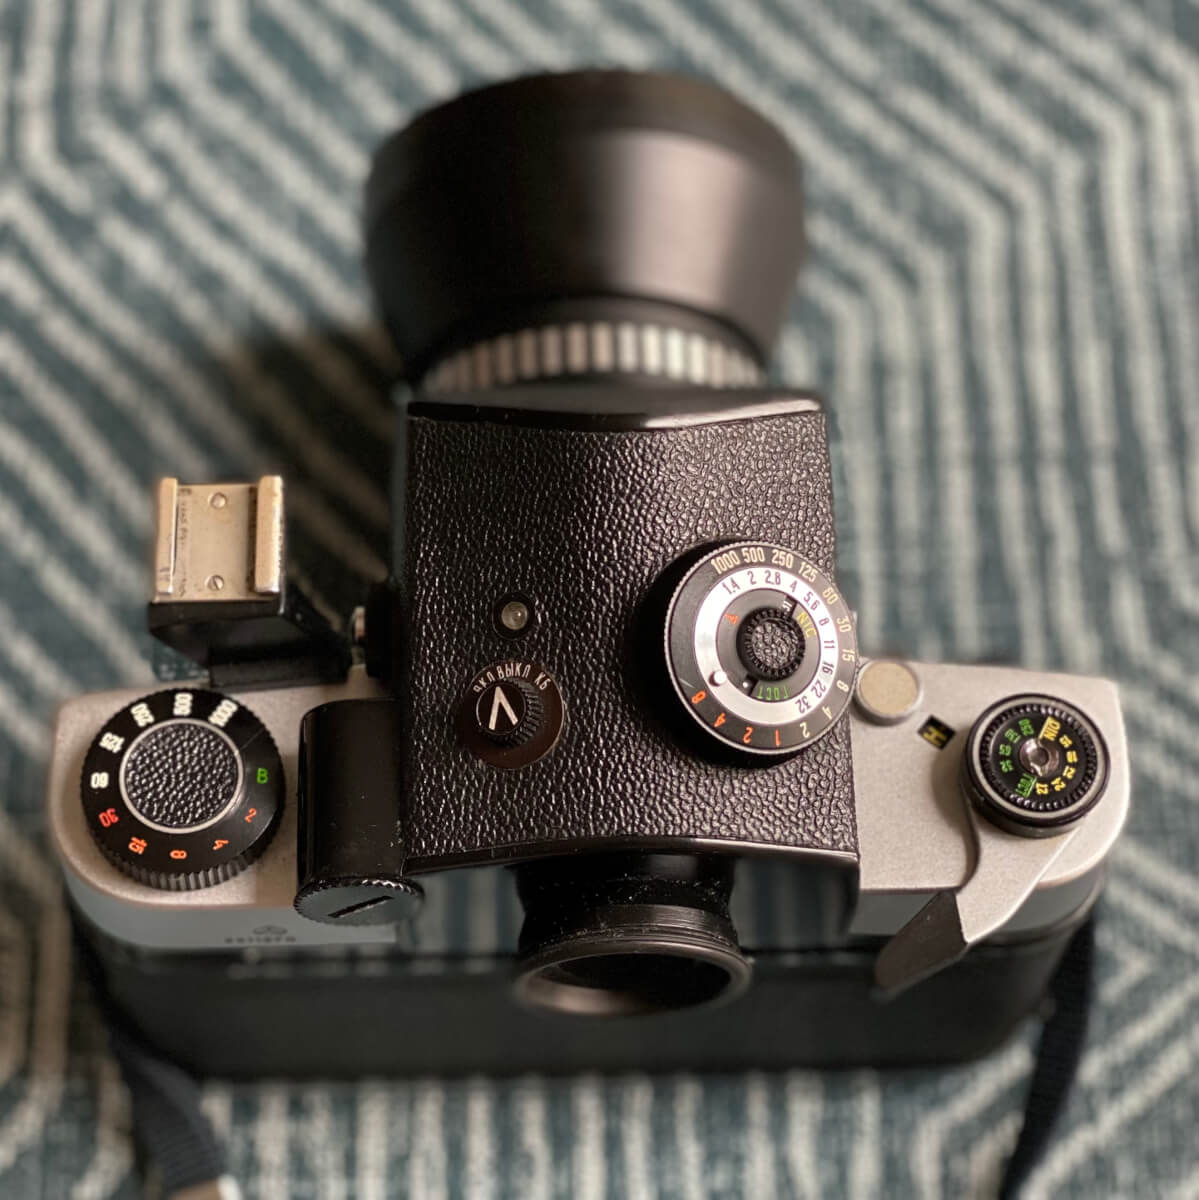 Top panel view with shutter speed, cold shoe, prism meter controls (uncoupled), and winder.